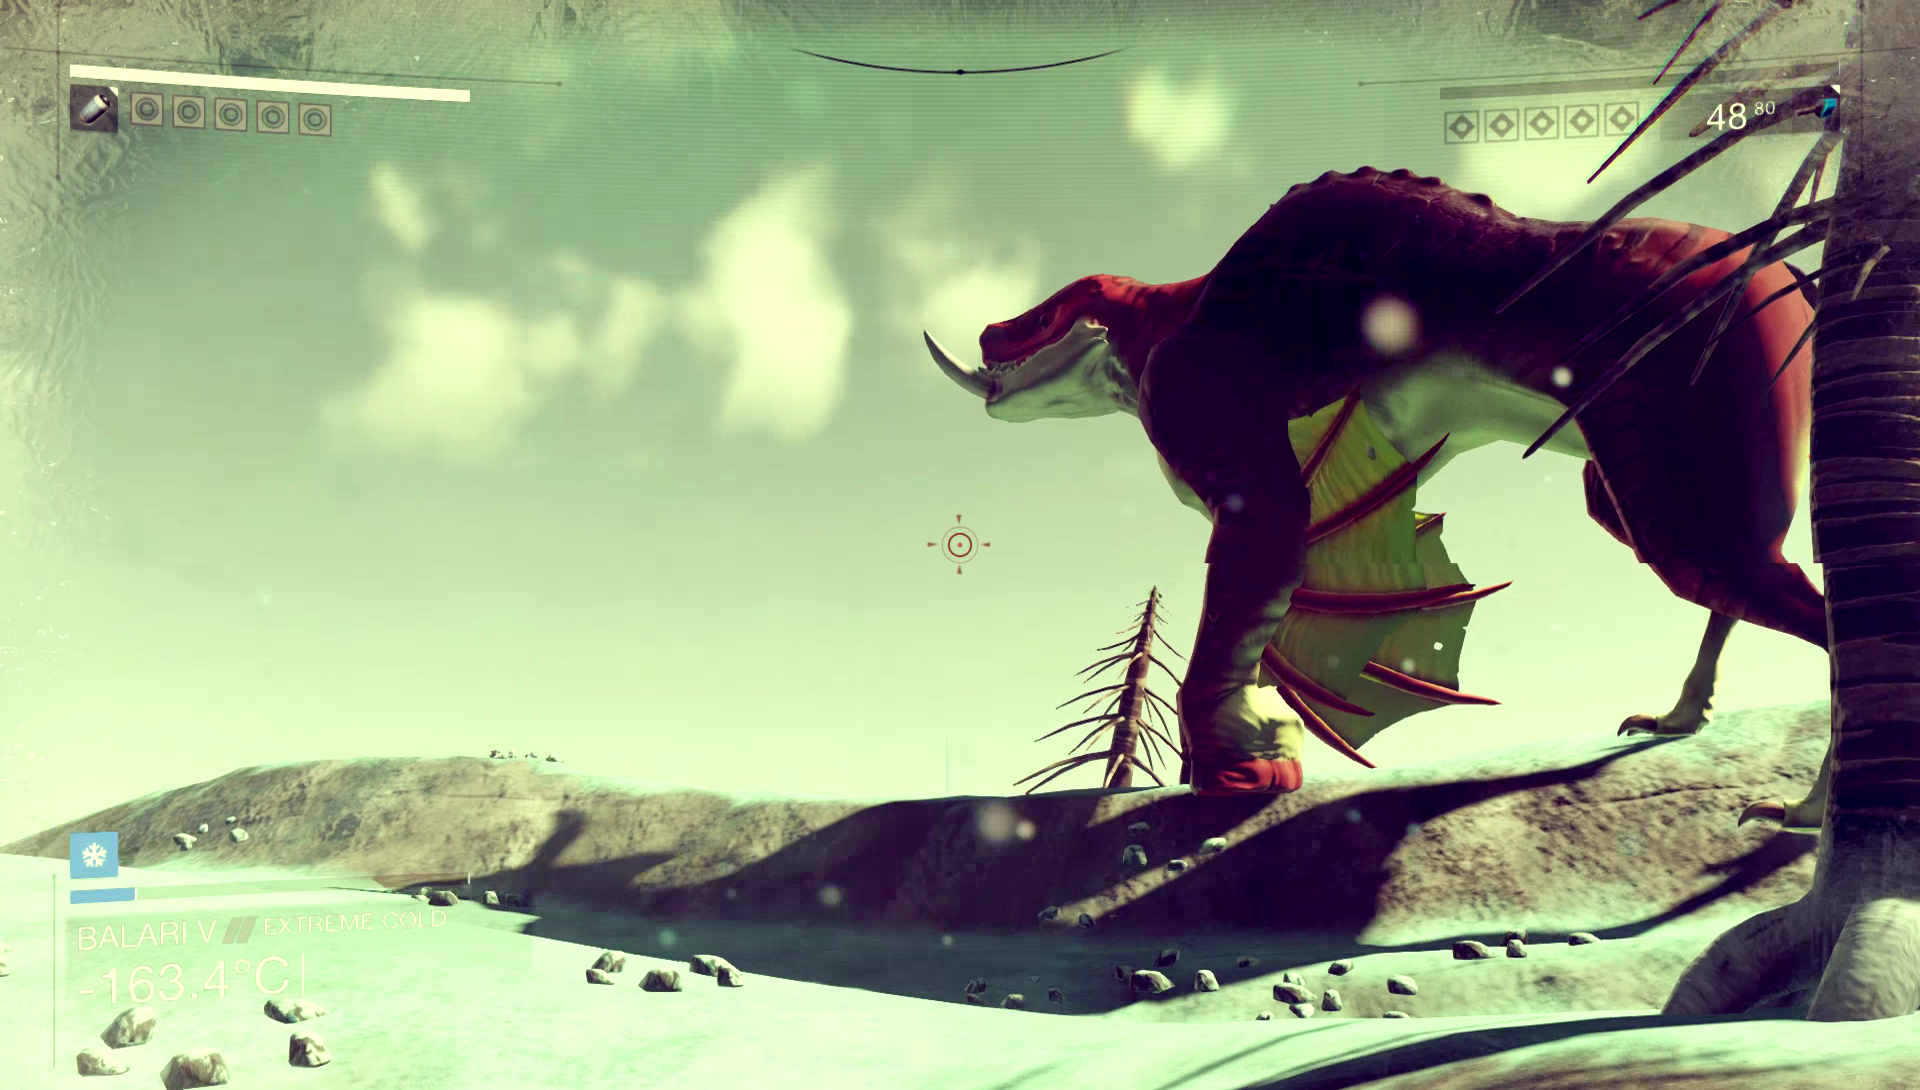 No Man's Sky finally charts its star path with major